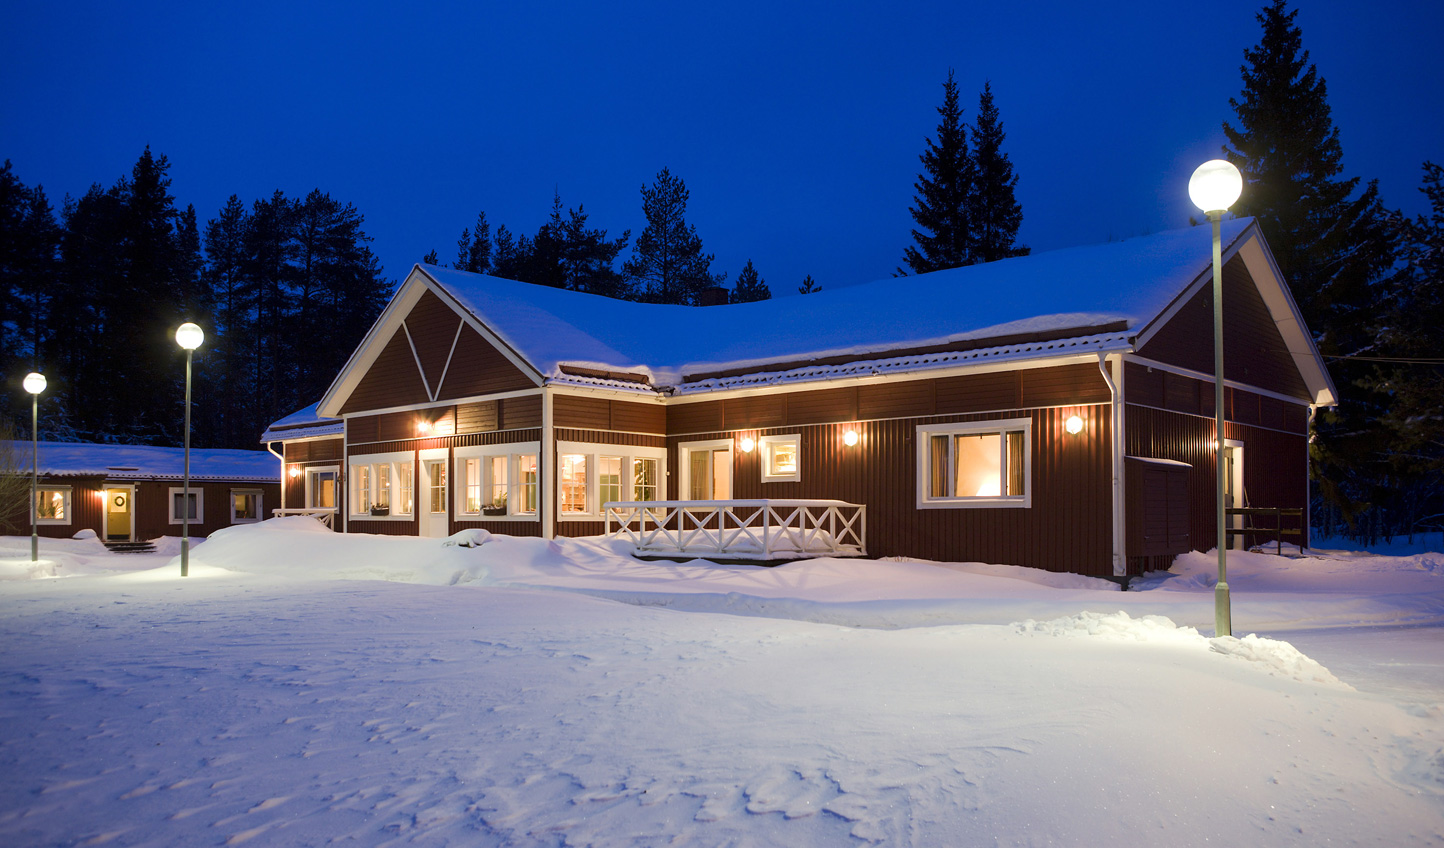 Welcome to a snowy Pine Bay Lodge